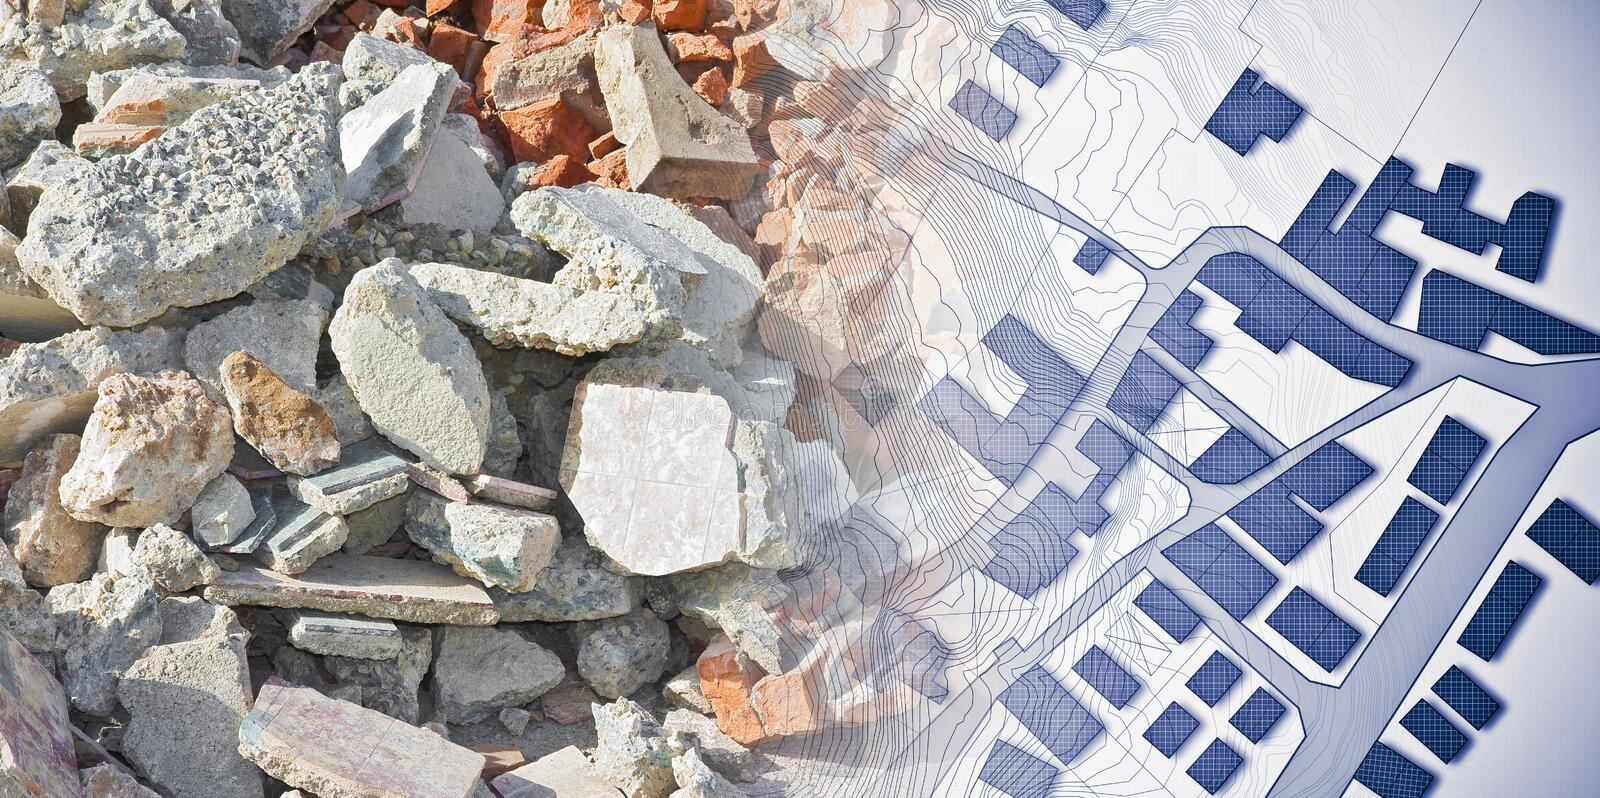 Concrete and brick rubble debris on construction site after a demolition of a brick building - concept image with a city map with. Buildings stock photo